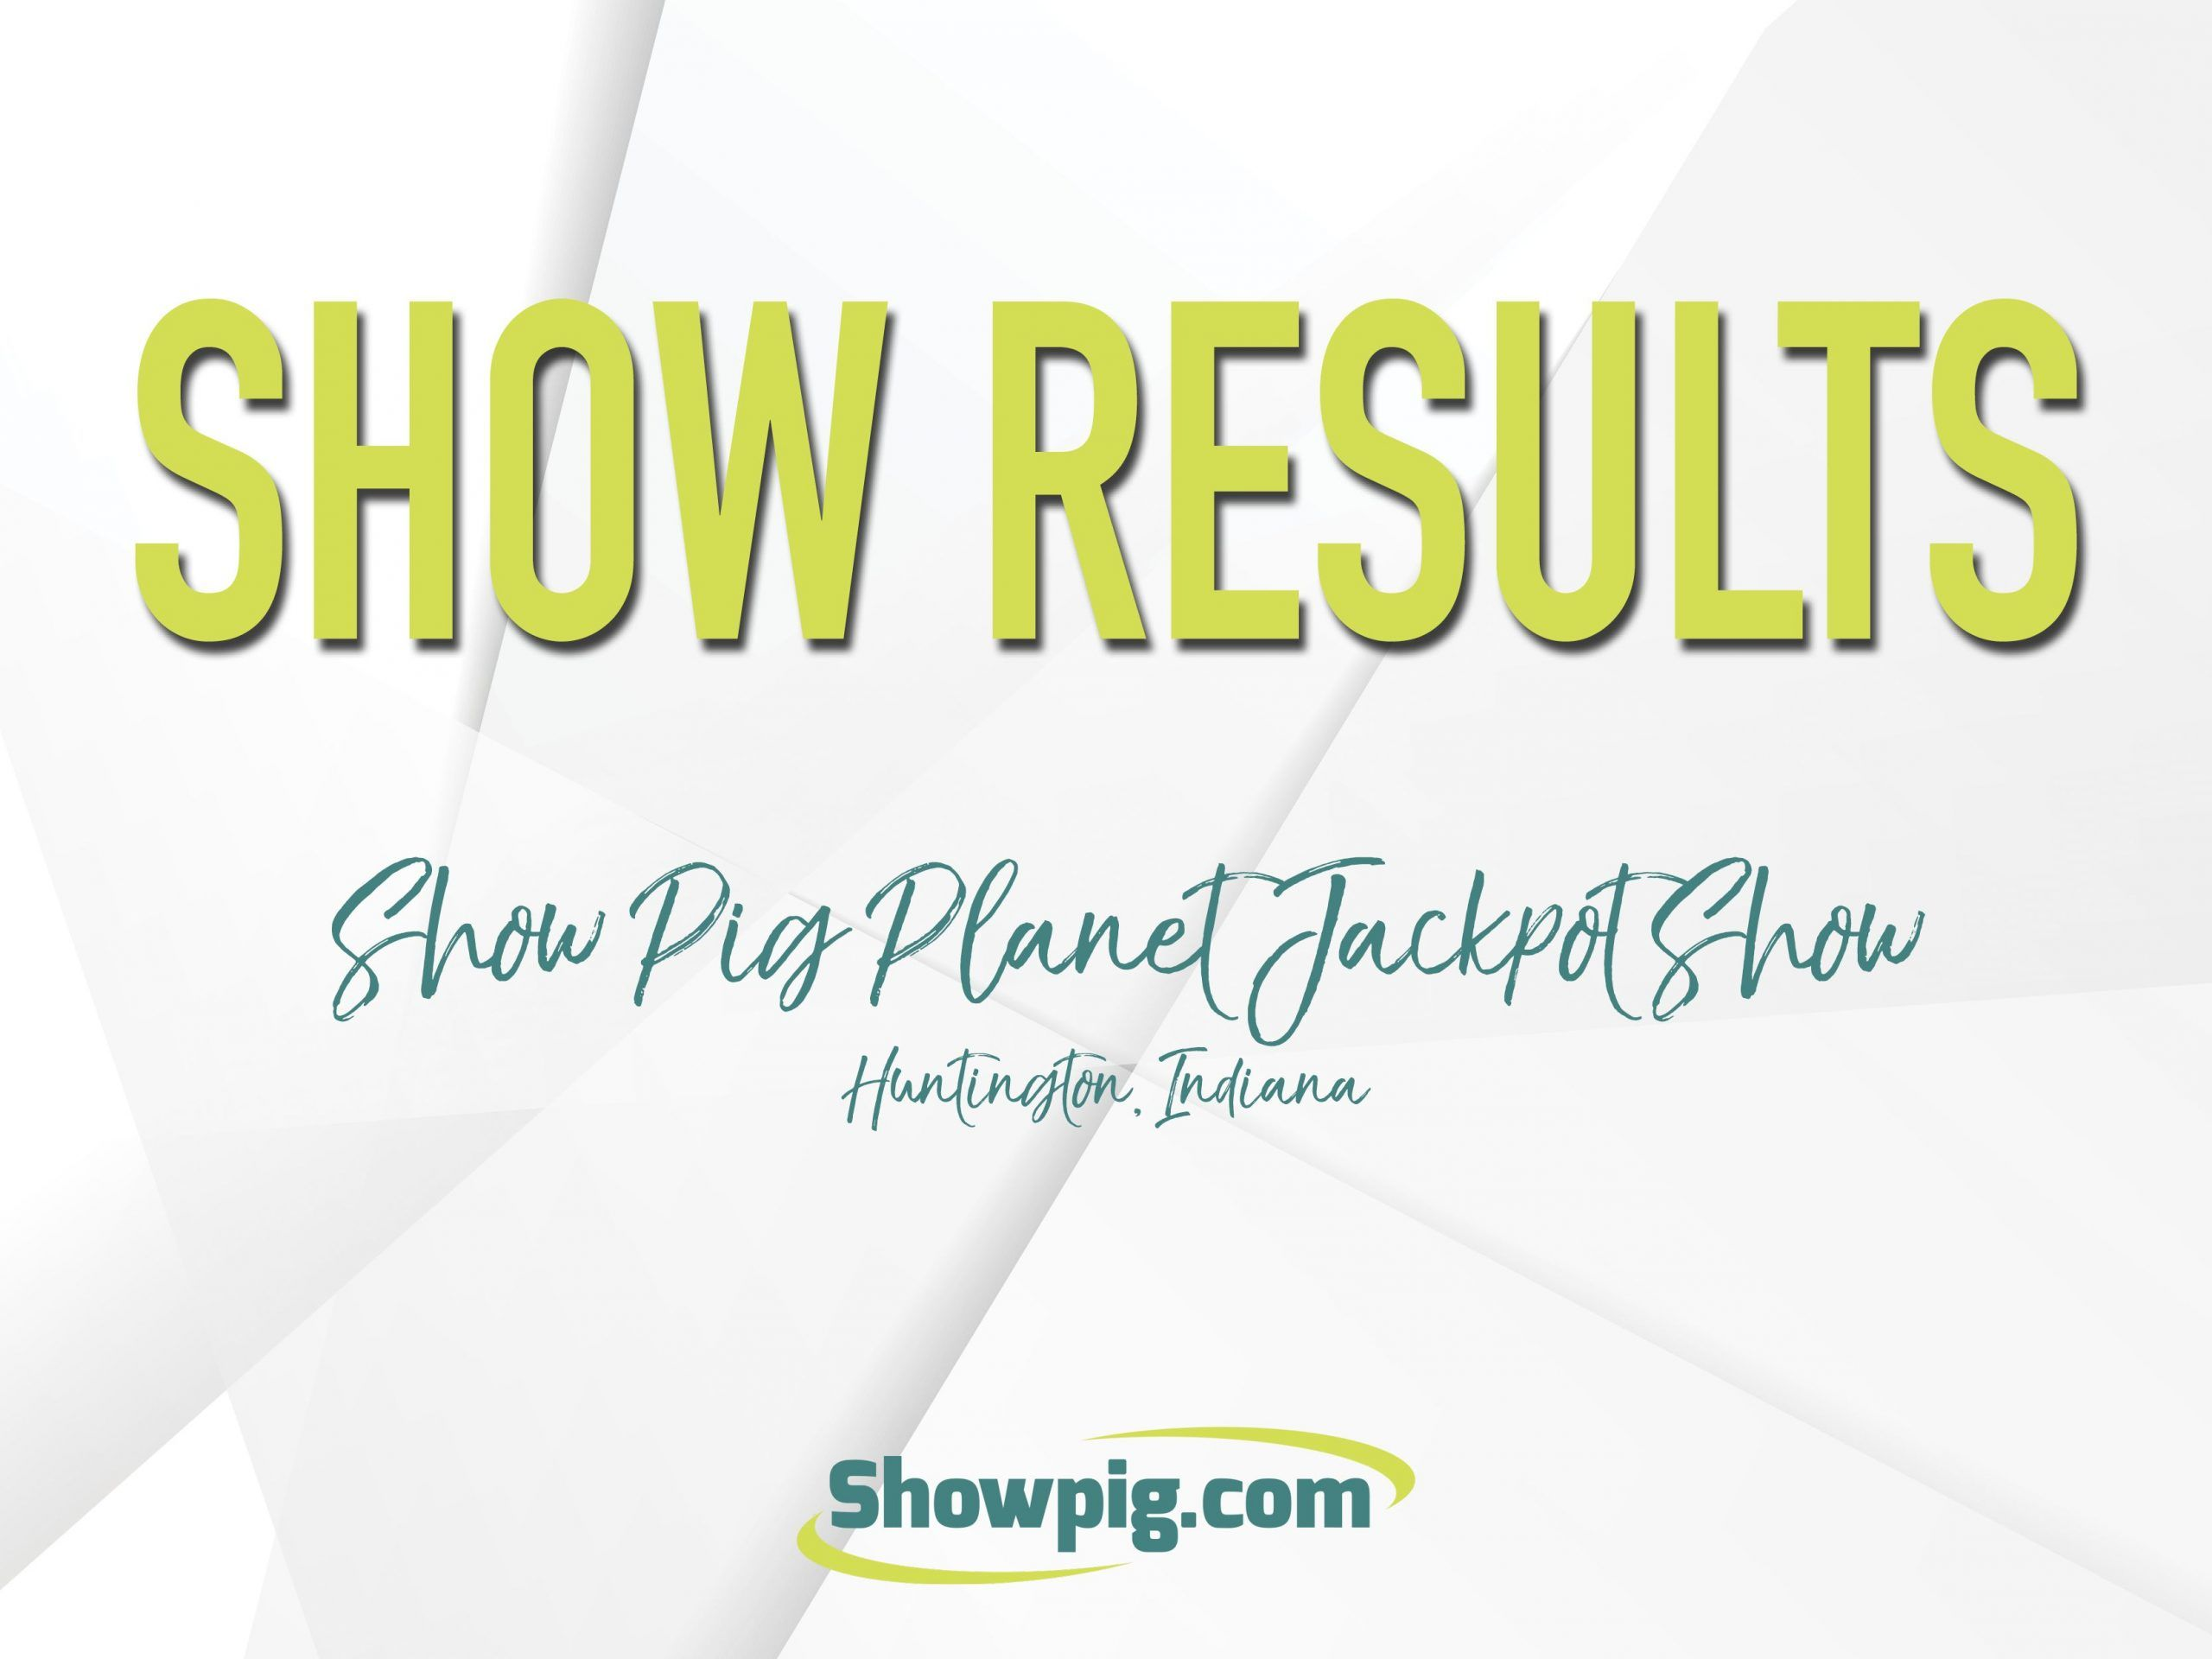 Featured image for the article titled Show Results :: Show Pig Planet Jackpot Show